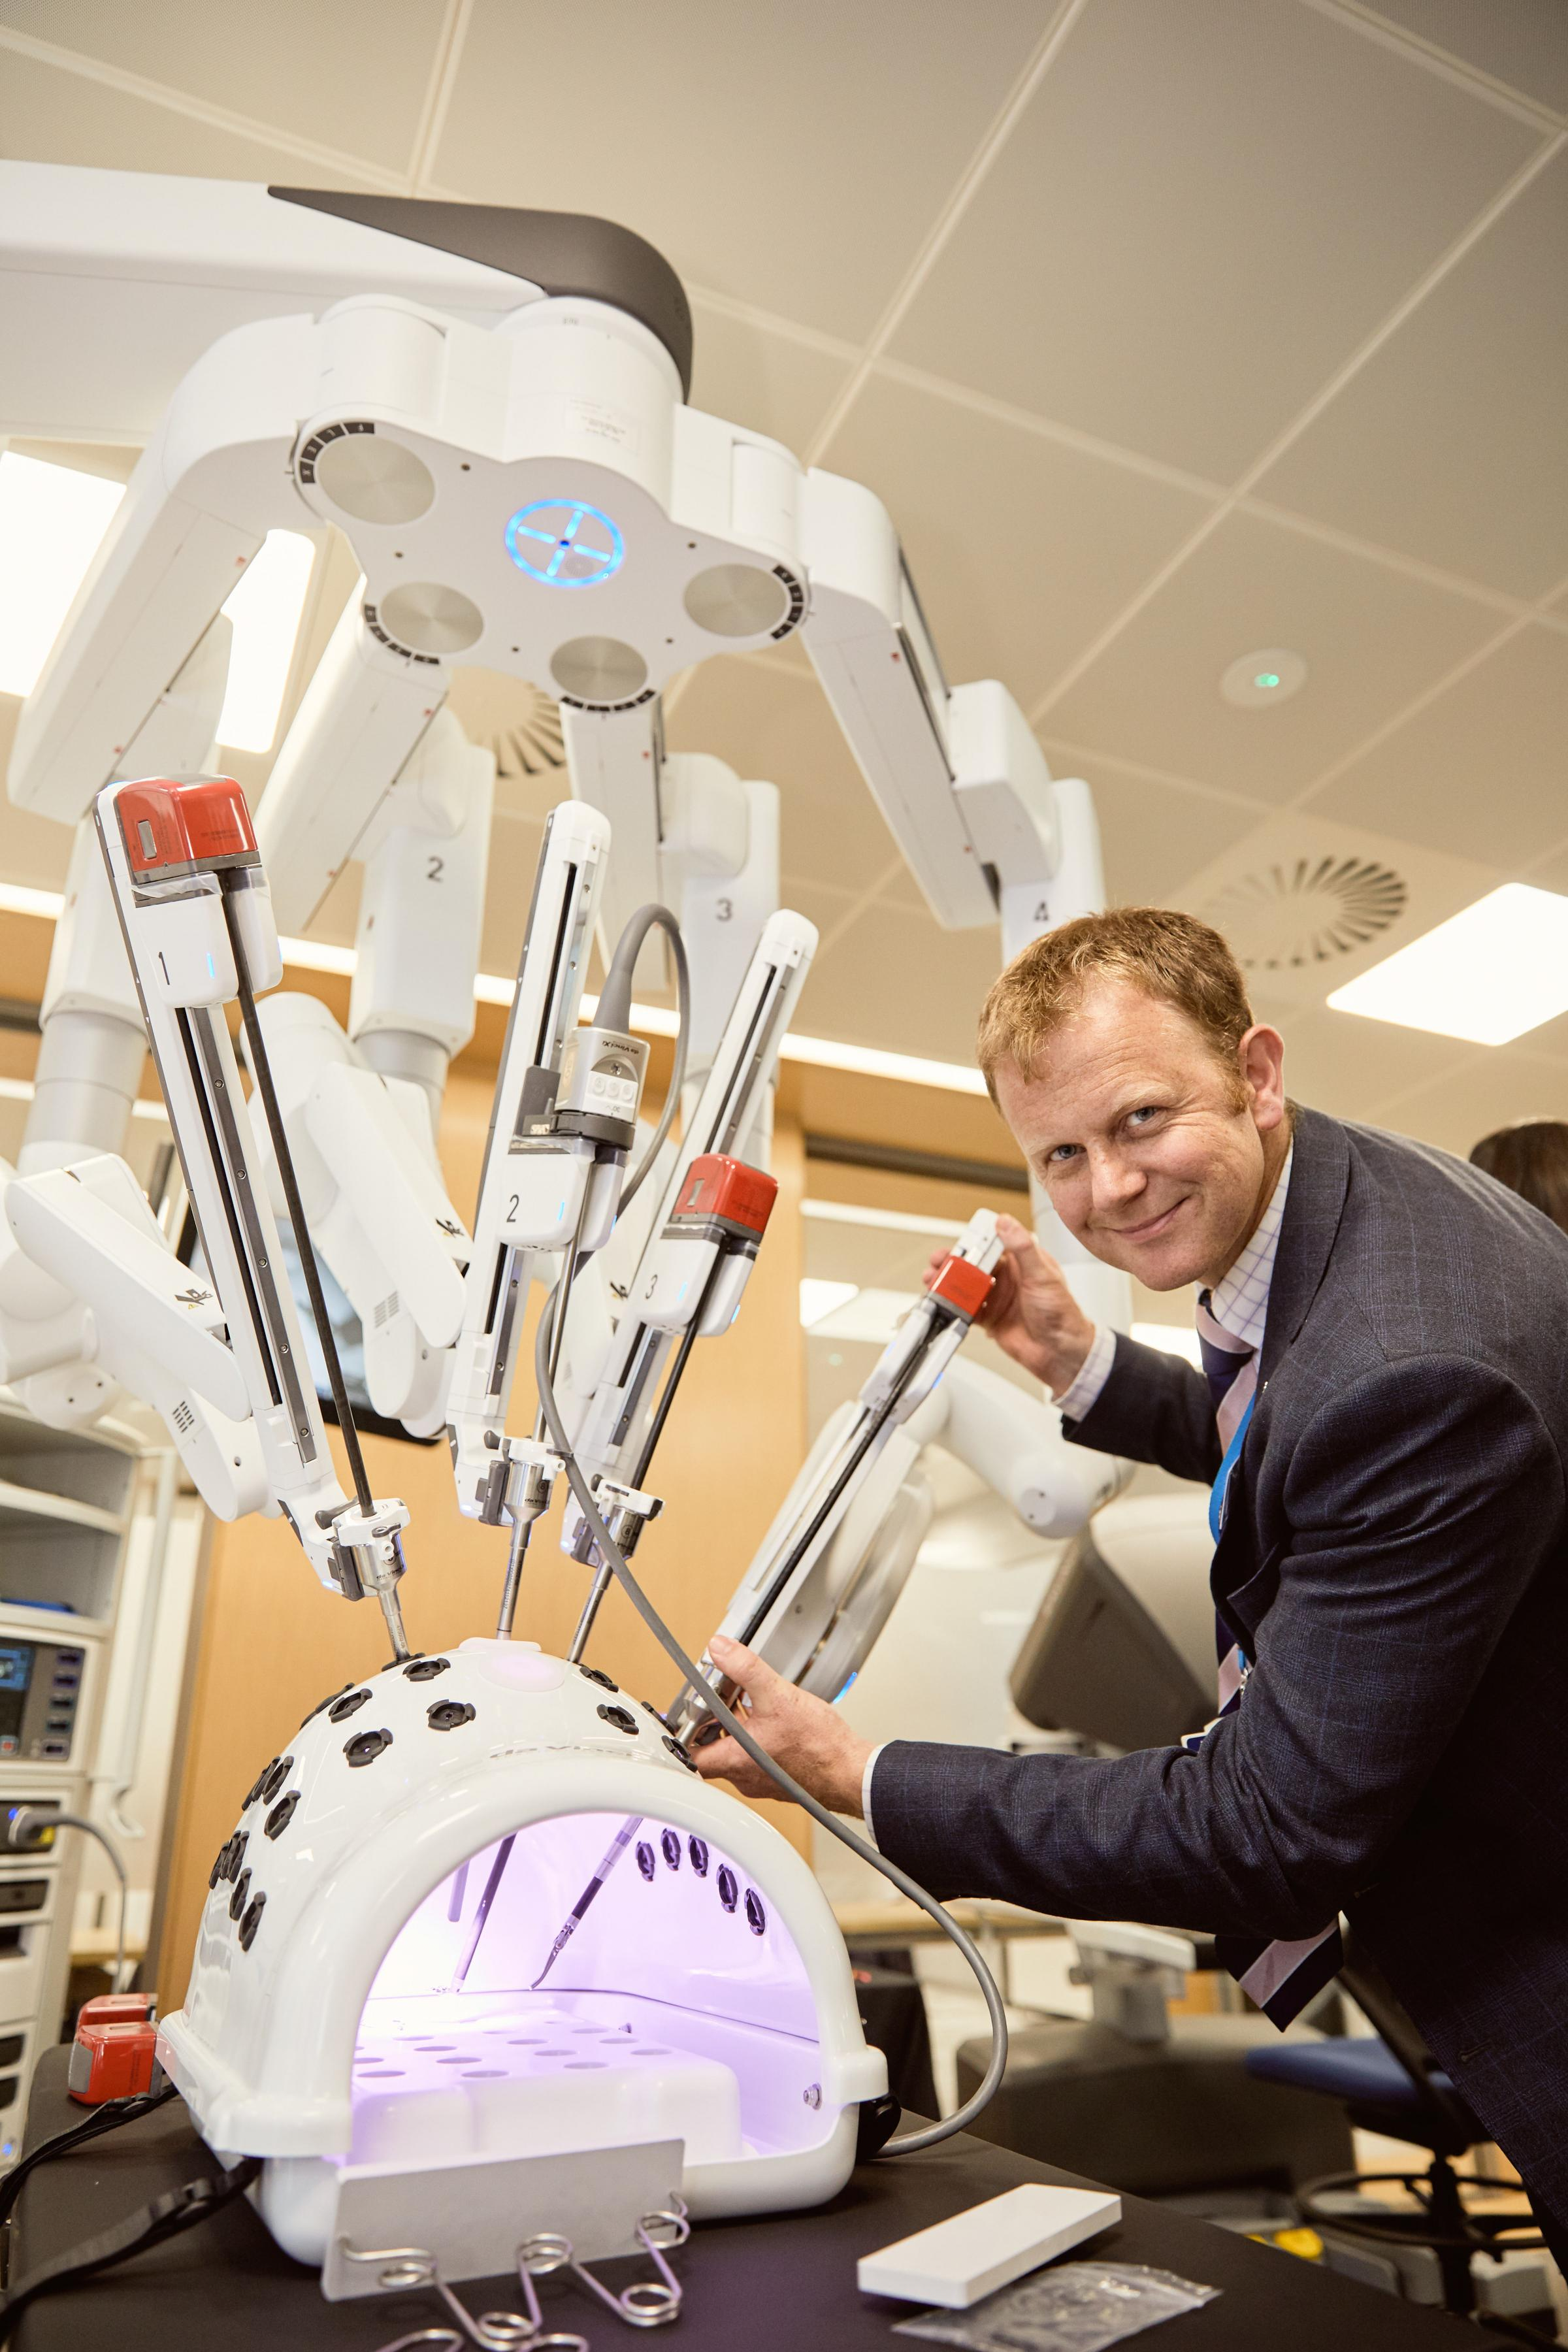 Robot-assisted surgery firm Intuitive open UK HQ in Oxford